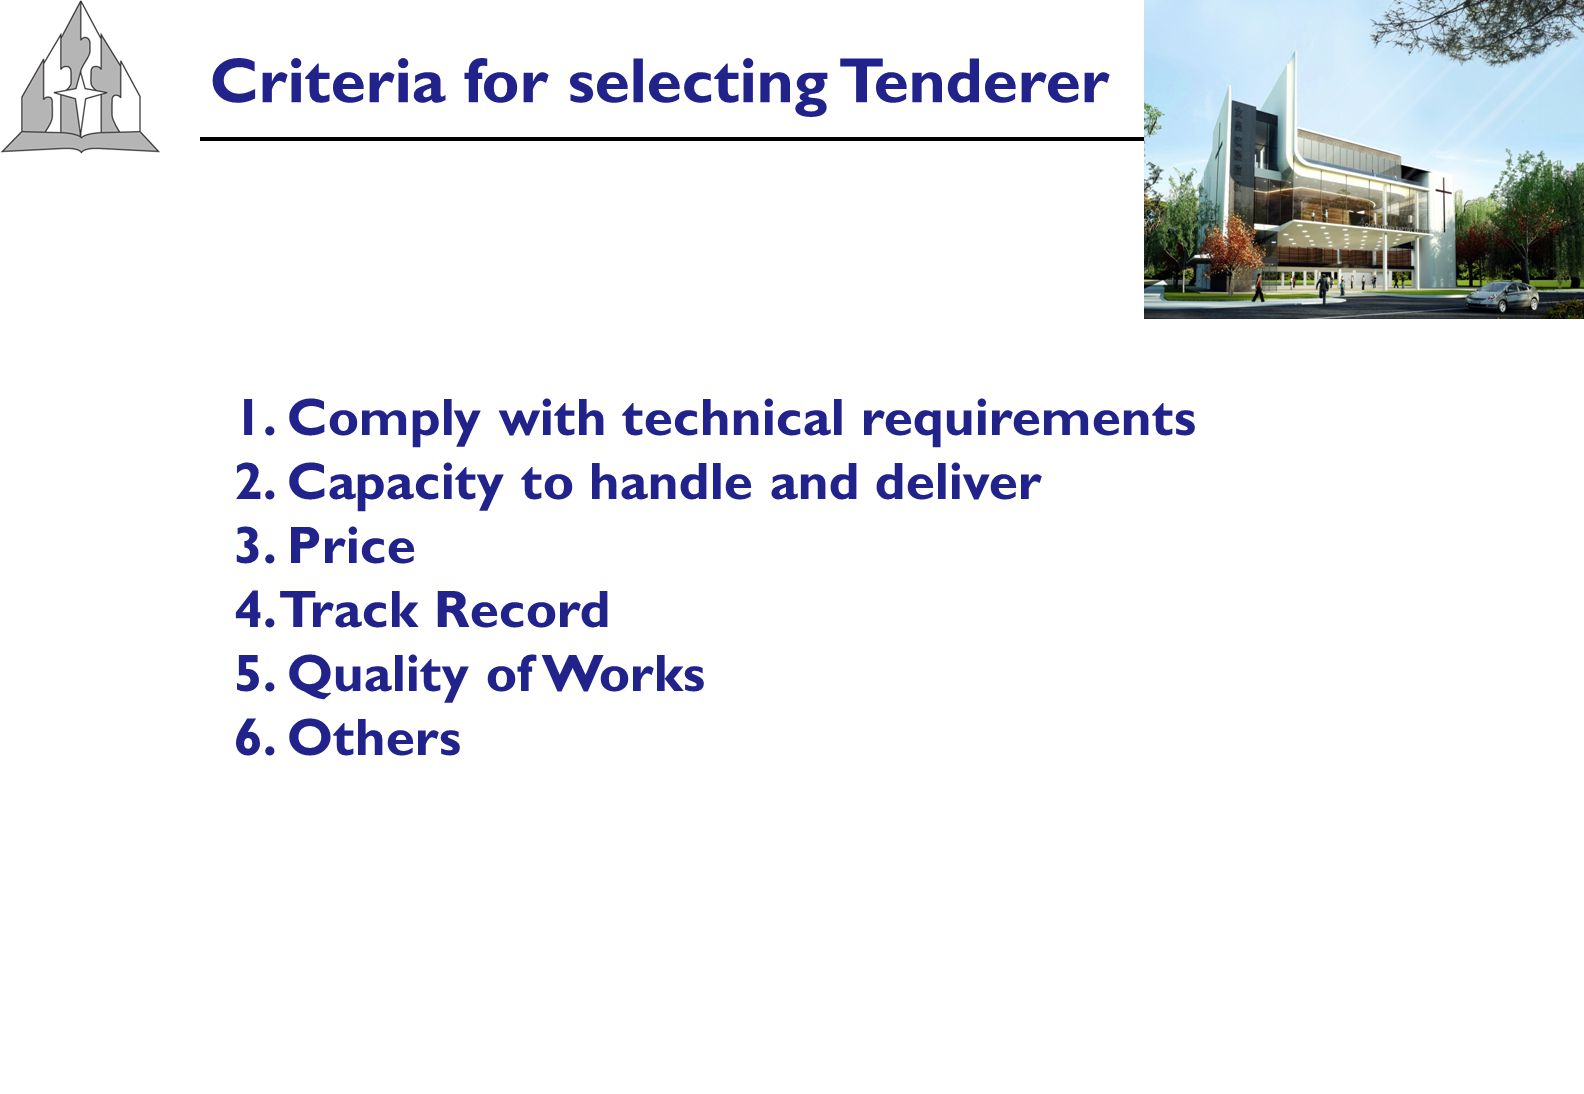 Summary of Tender Prices (A)Builders Company1st RdFinal Rd Difference fr 1st Rd % Less fr 1 st Rd % Difference of lowest 1Company A1 $ 7,820,000 $ 7,480,000-$ 340,000-4.3%0.0% 2Company A2 $ 8,196,563 $ 7,650,000-$ 546,563-6.7%2.9% 3Hong Kiat Construction $ 8,876,272 $ 7,845,676-$ 1,030,596-11.6%4.9% 4Capstone Construction $ 8,890,000 Not Invited 18.9% 5Chong Tong Construction $ 8,970,000 $ 8,460,000-$ 510,000-5.7%13.1% 6 Array Engineering & Construction $ 9,130,100 Not Invited 22.1% Note:Above tender include provision sum of $2.943mil for M&E, sound system, joinery All Prices exclude GST